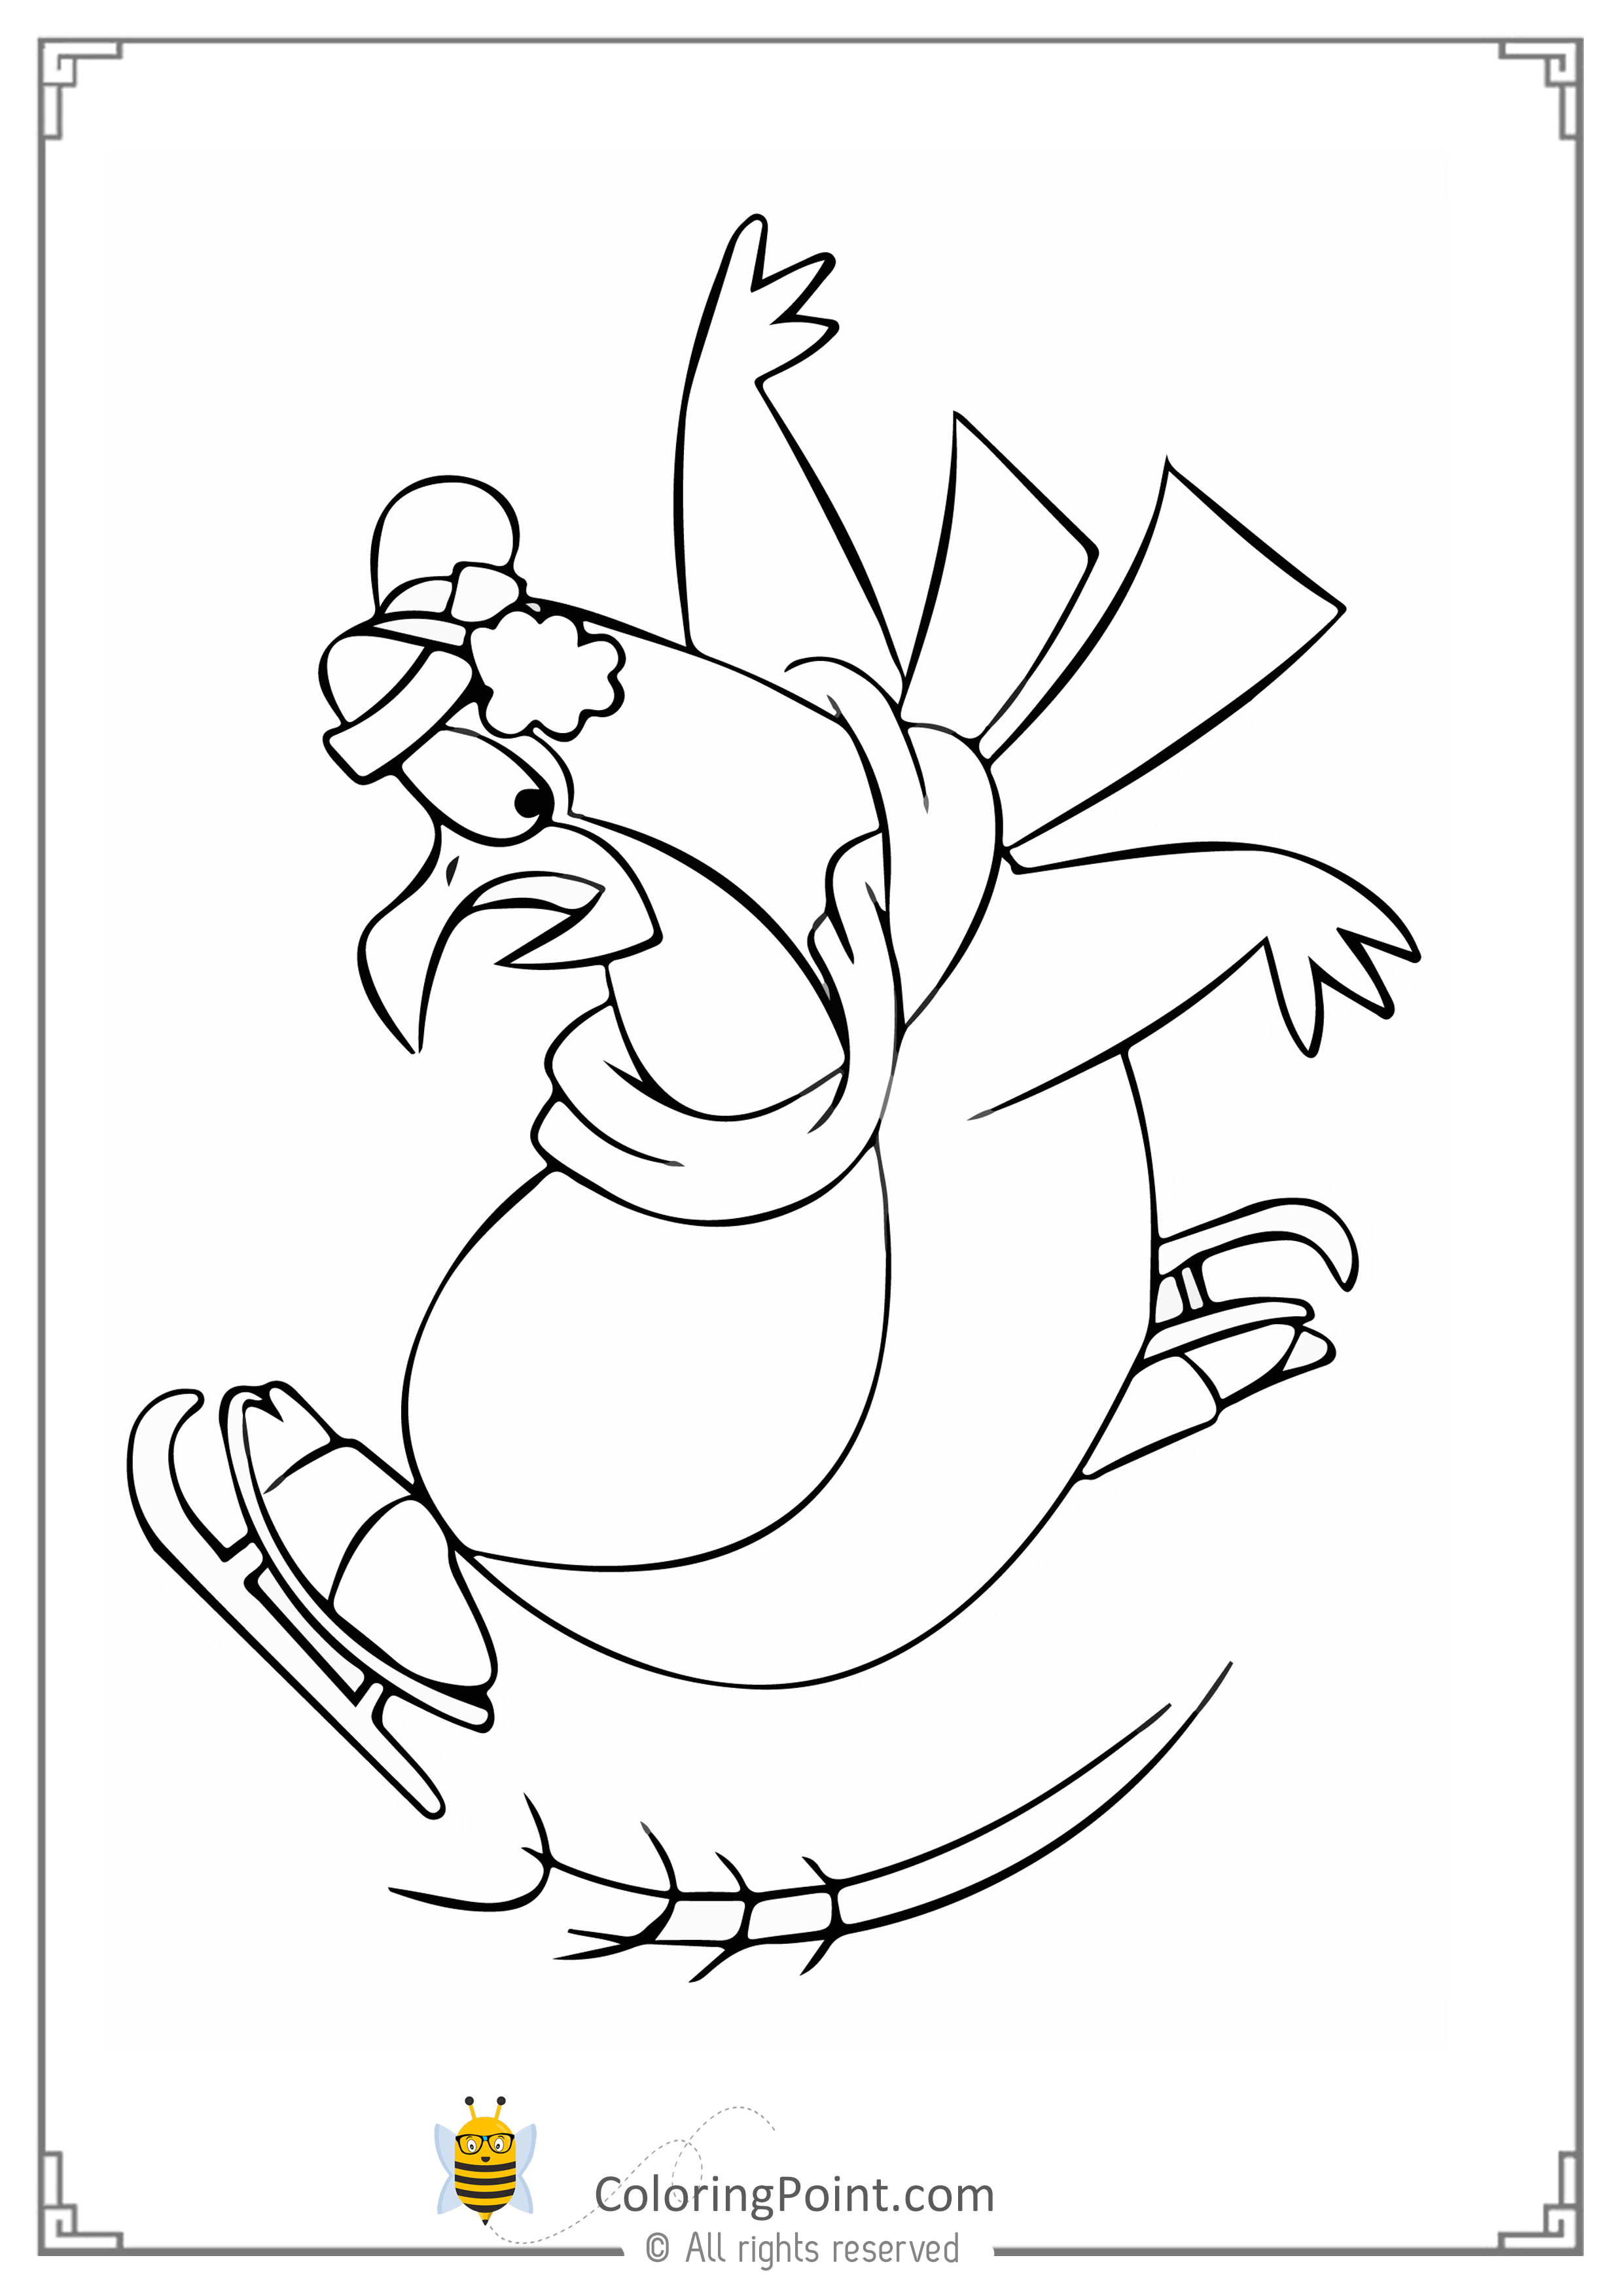 penguin coloring page for kids Coloring Point Coloring